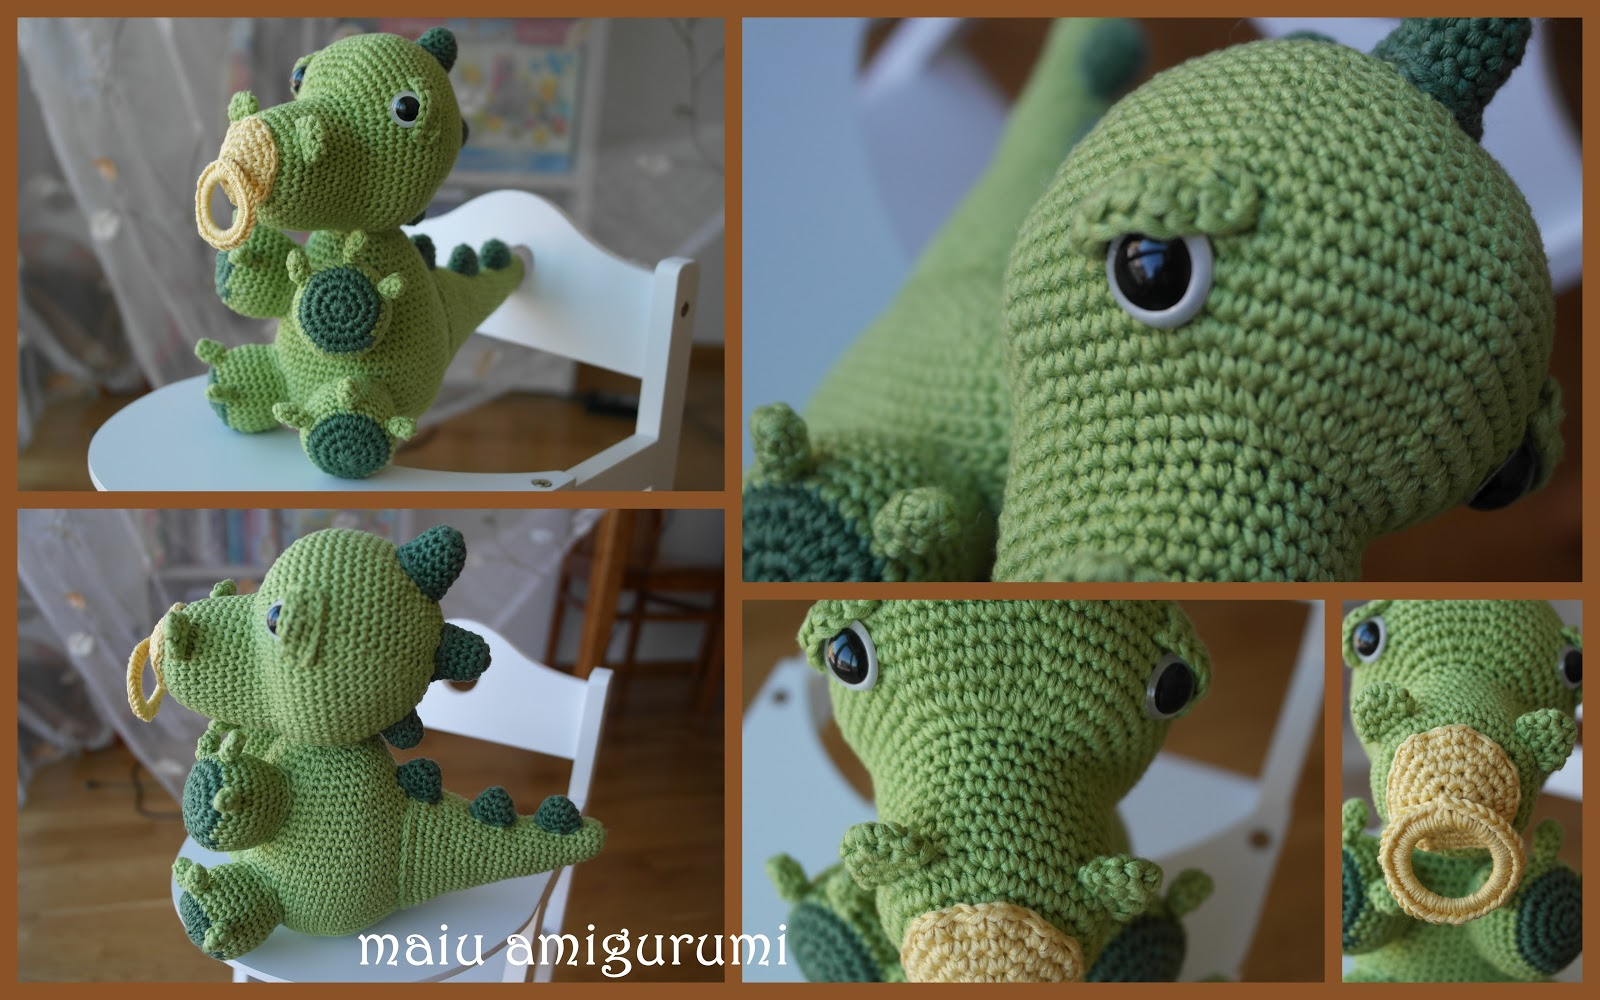 one more baby dragon maiu amigurumi